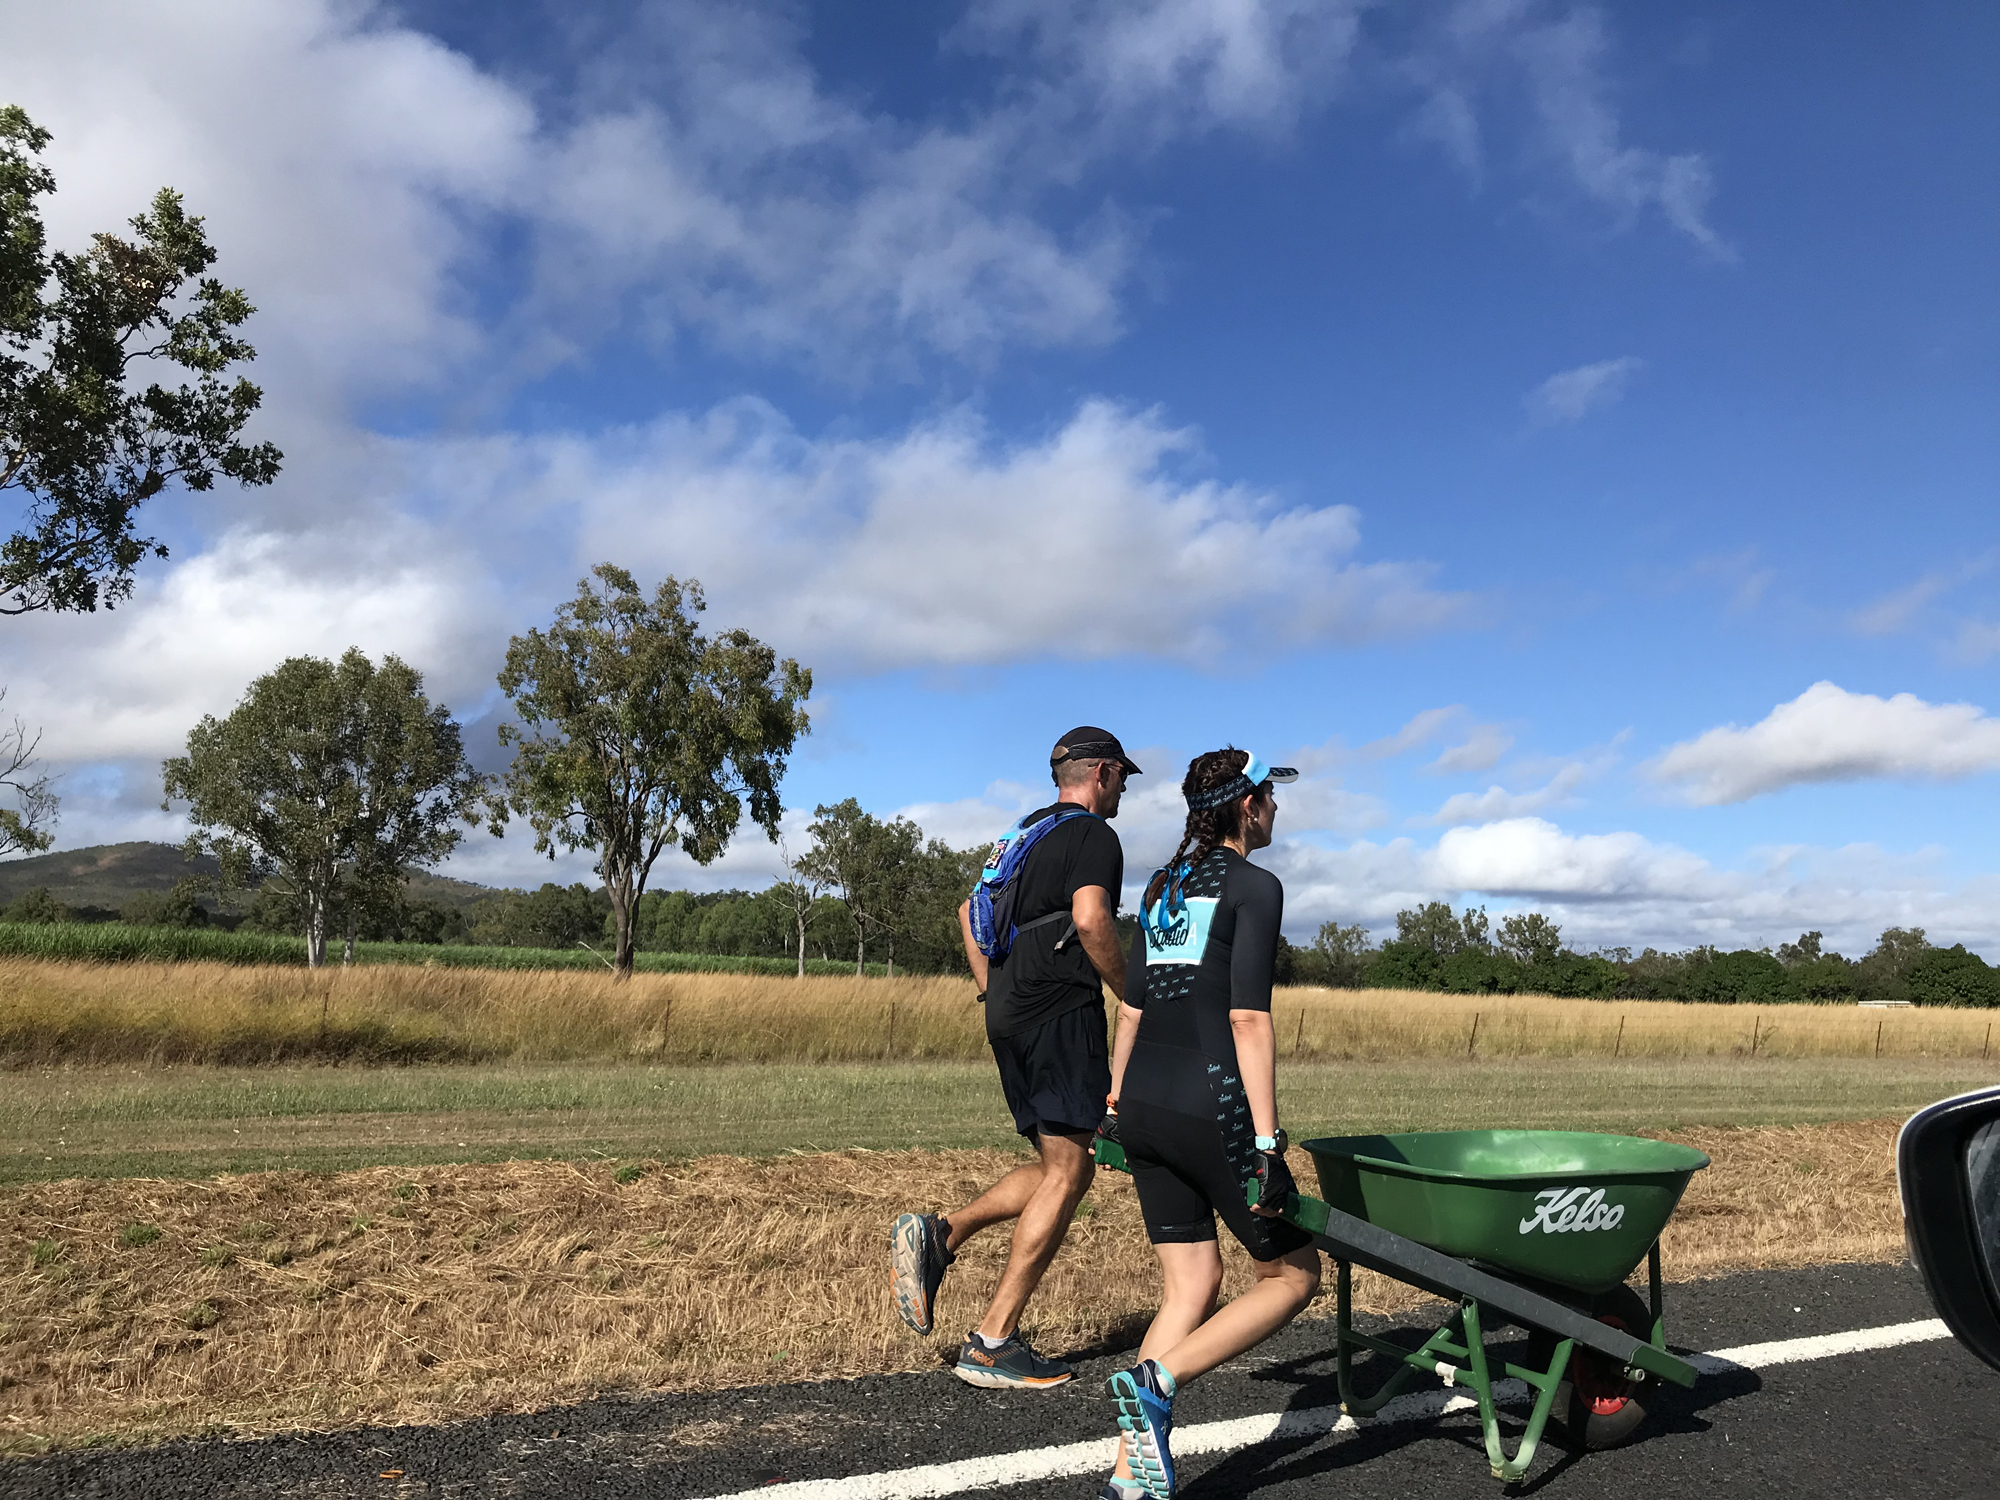 We drove alongside the  Great Wheelbarrow Race ! Mareeba to Chillagoe – 140km. The seamless team transitions were a sight to behold!